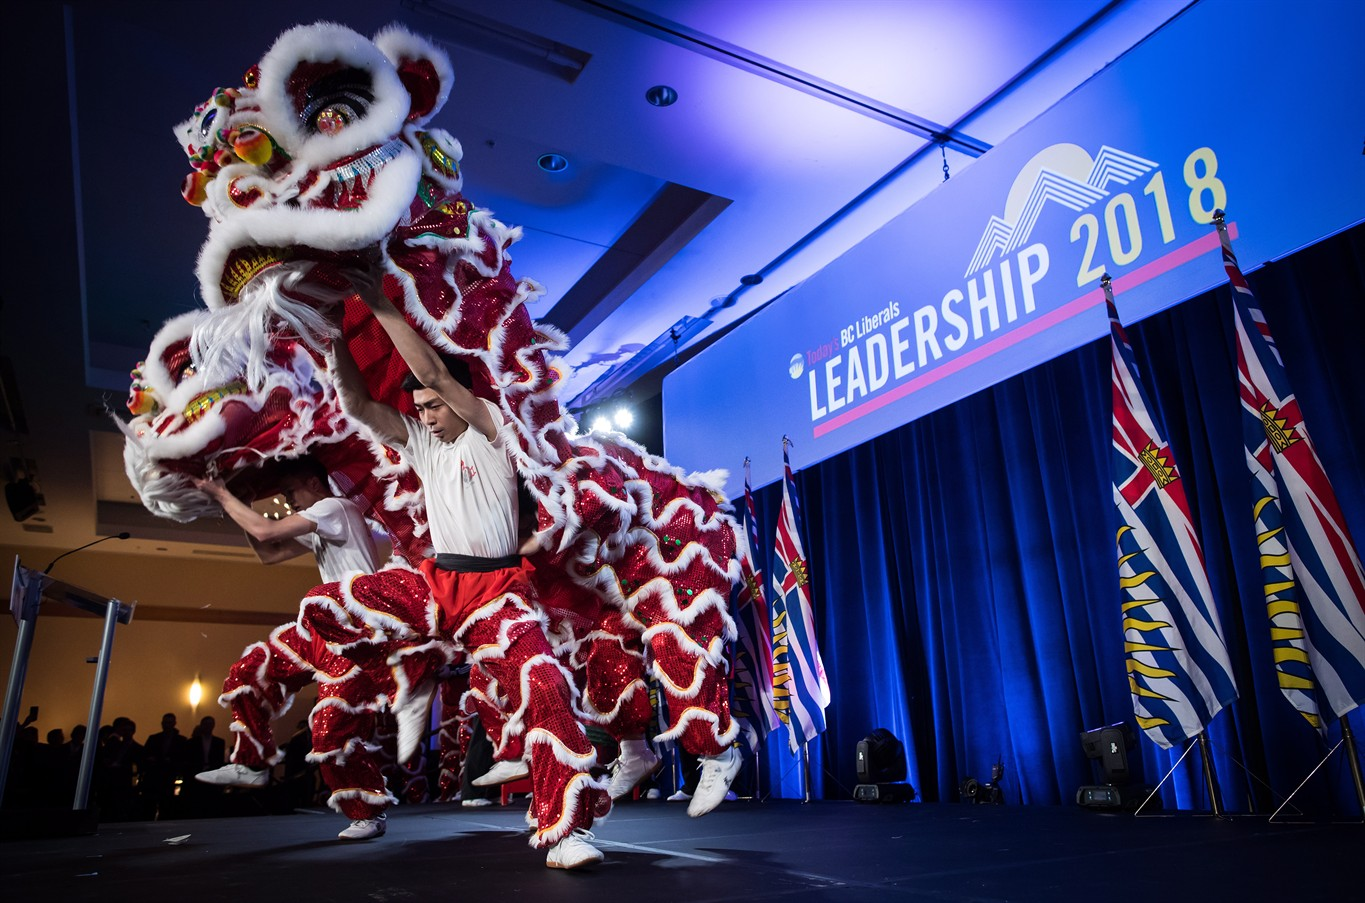 Battle lines fading with new BC Liberal leader: Ashton